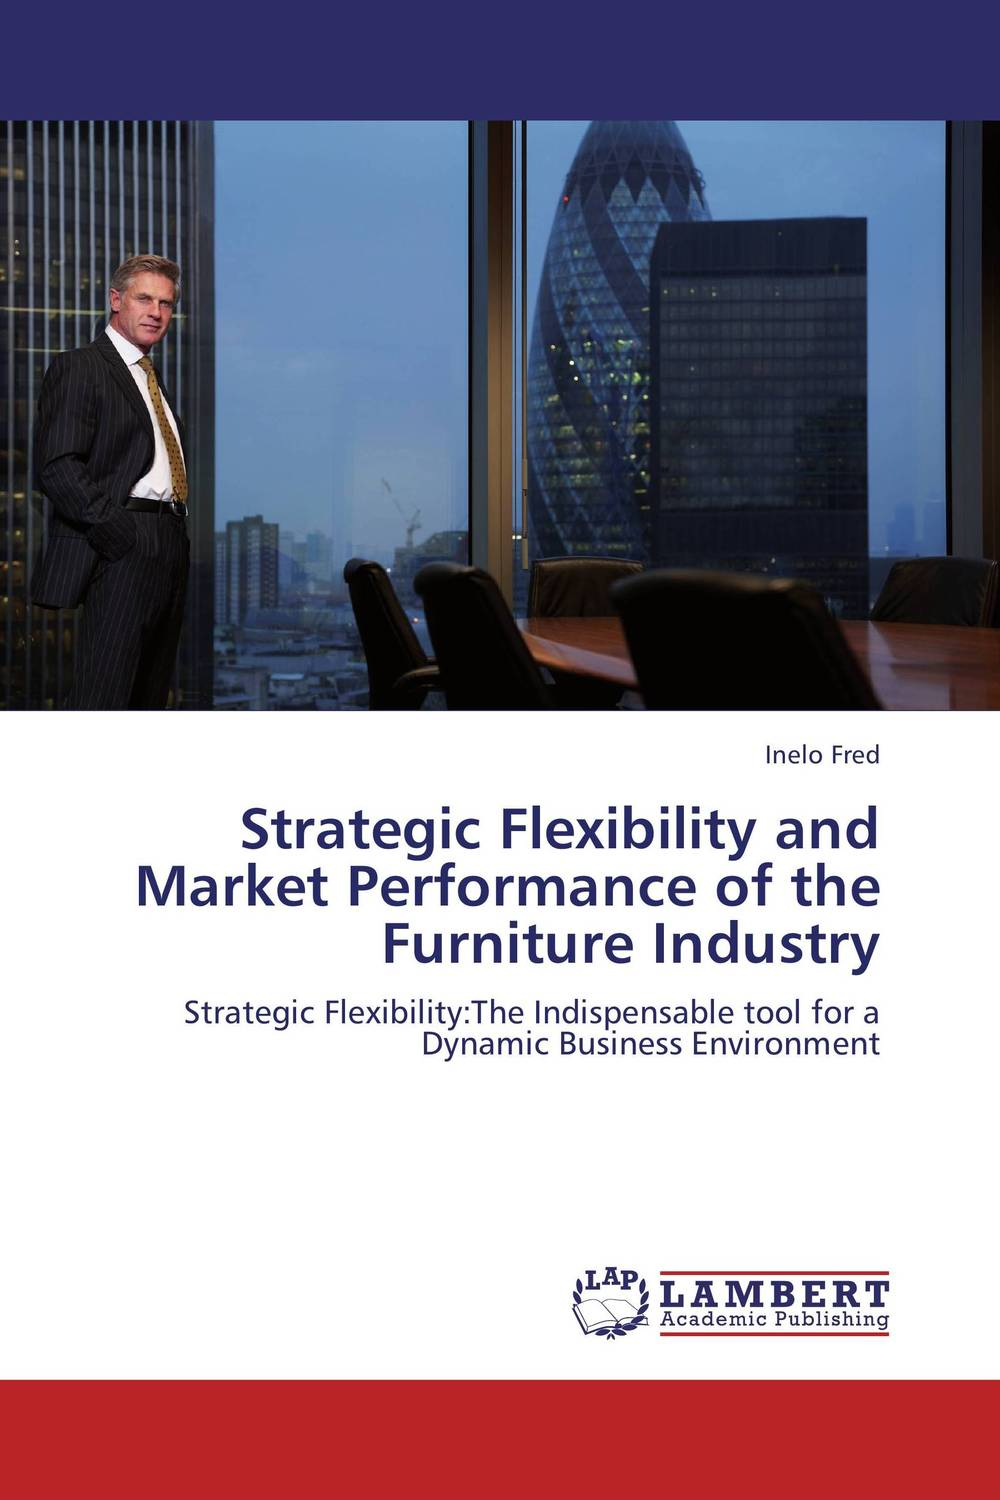 Strategic Flexibility and Market Performance of the Furniture Industry customer experience as a strategic differentiator